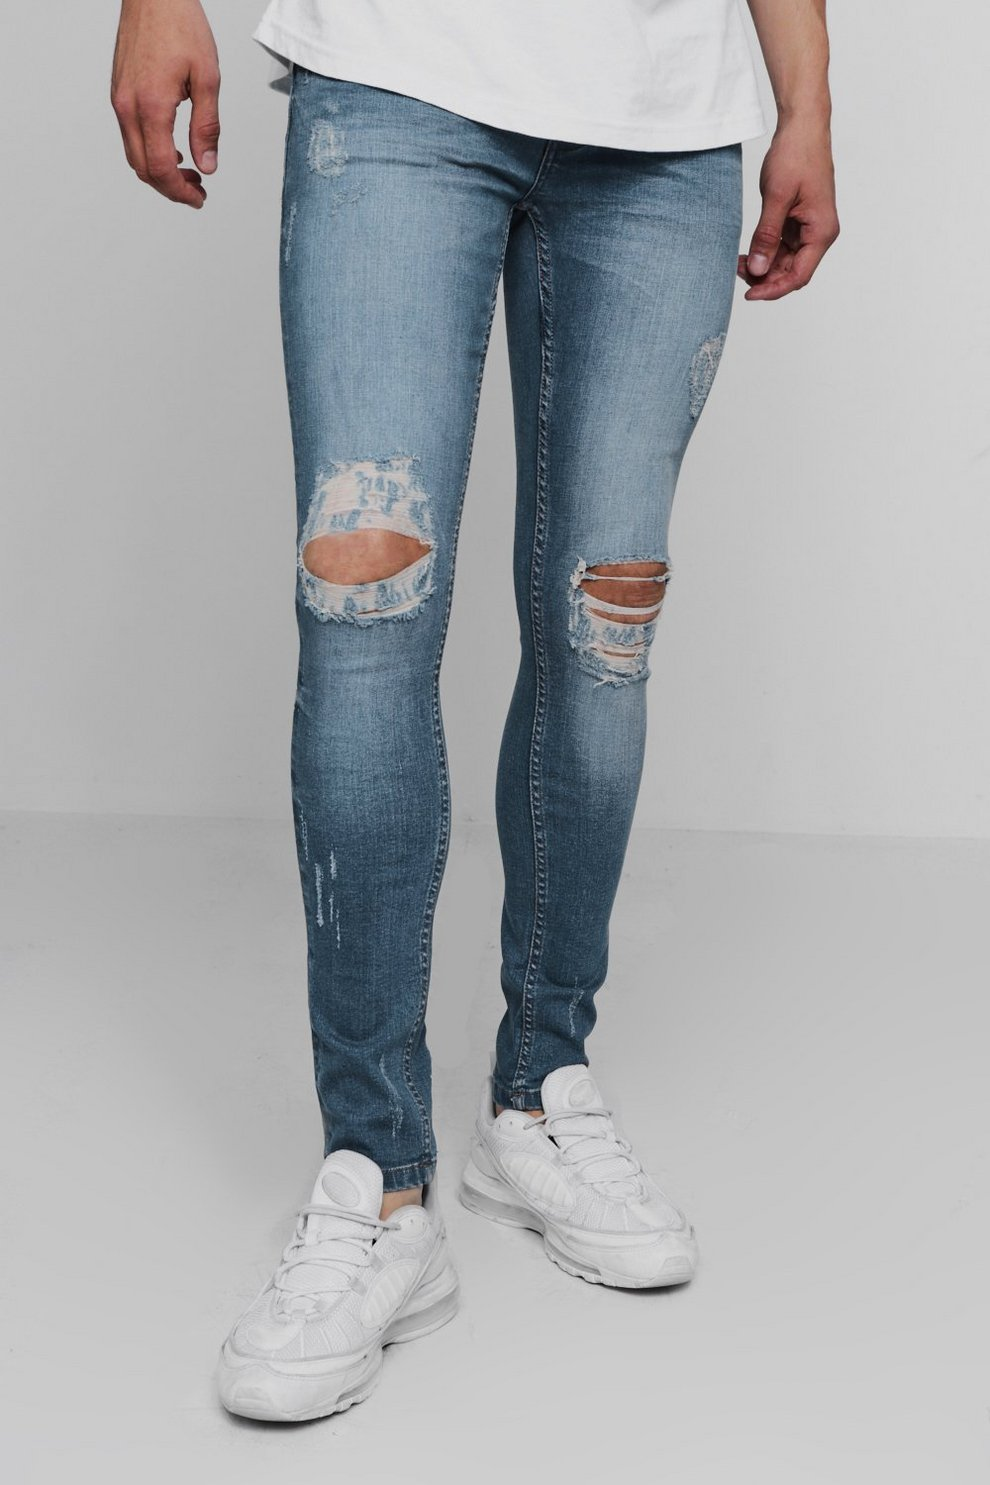 11d9069cd1 Super Skinny Ripped Knee Denim Jeans. Hover to zoom